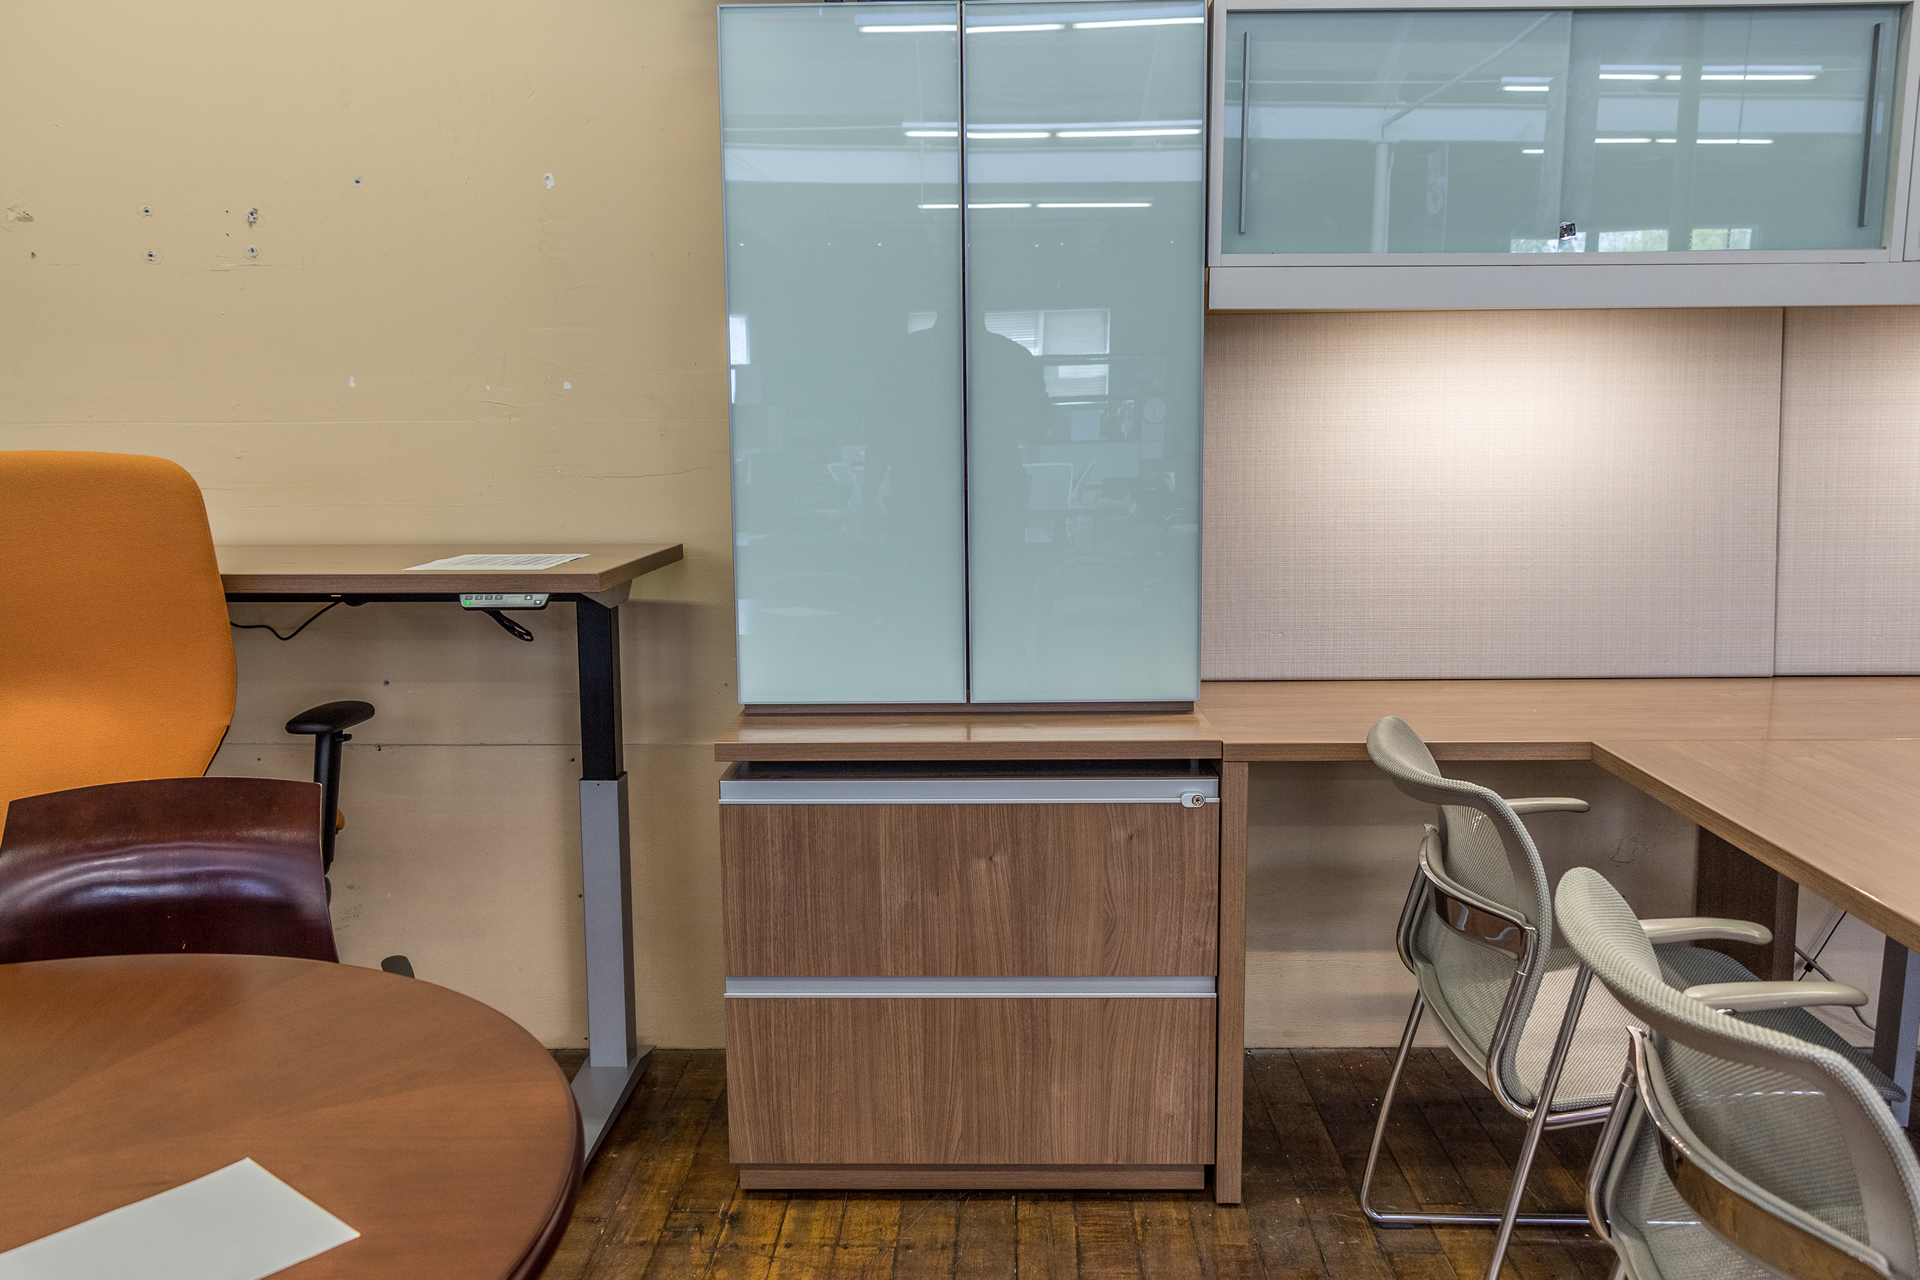 peartreeofficefurniture_peartreeofficefurniture_peartreeofficefurniture_img_9975_1.jpg